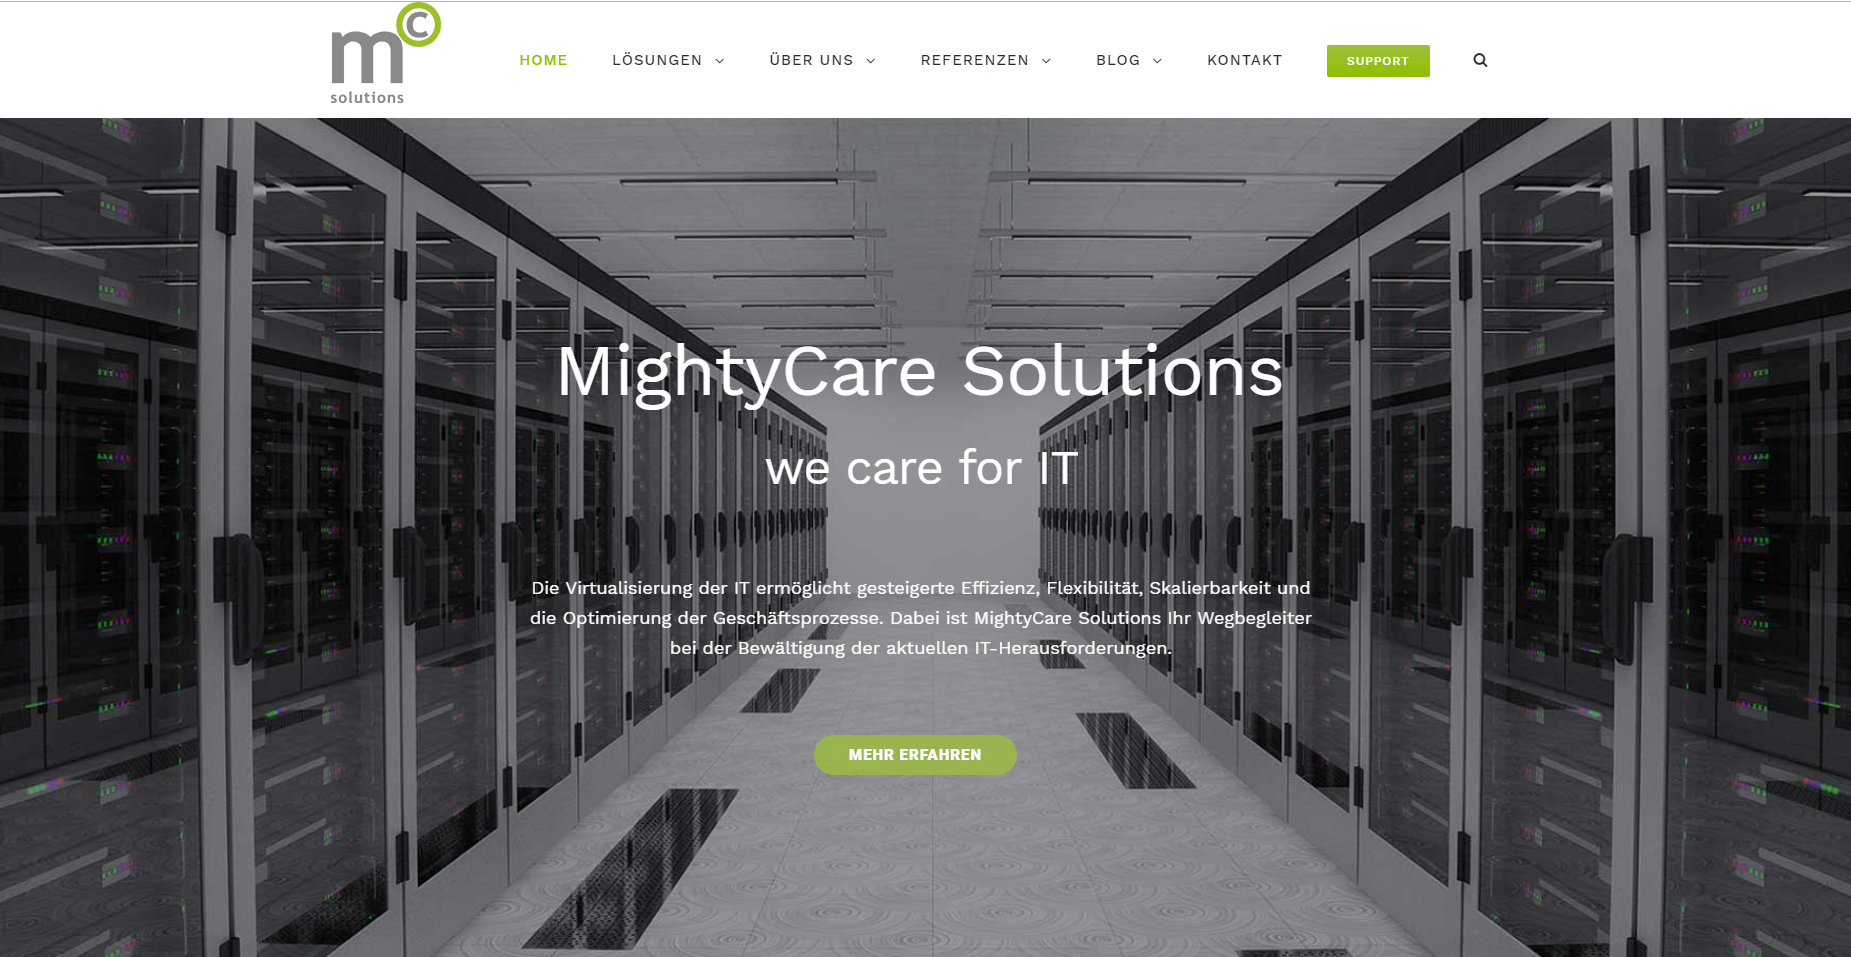 Mighty Care Solutions